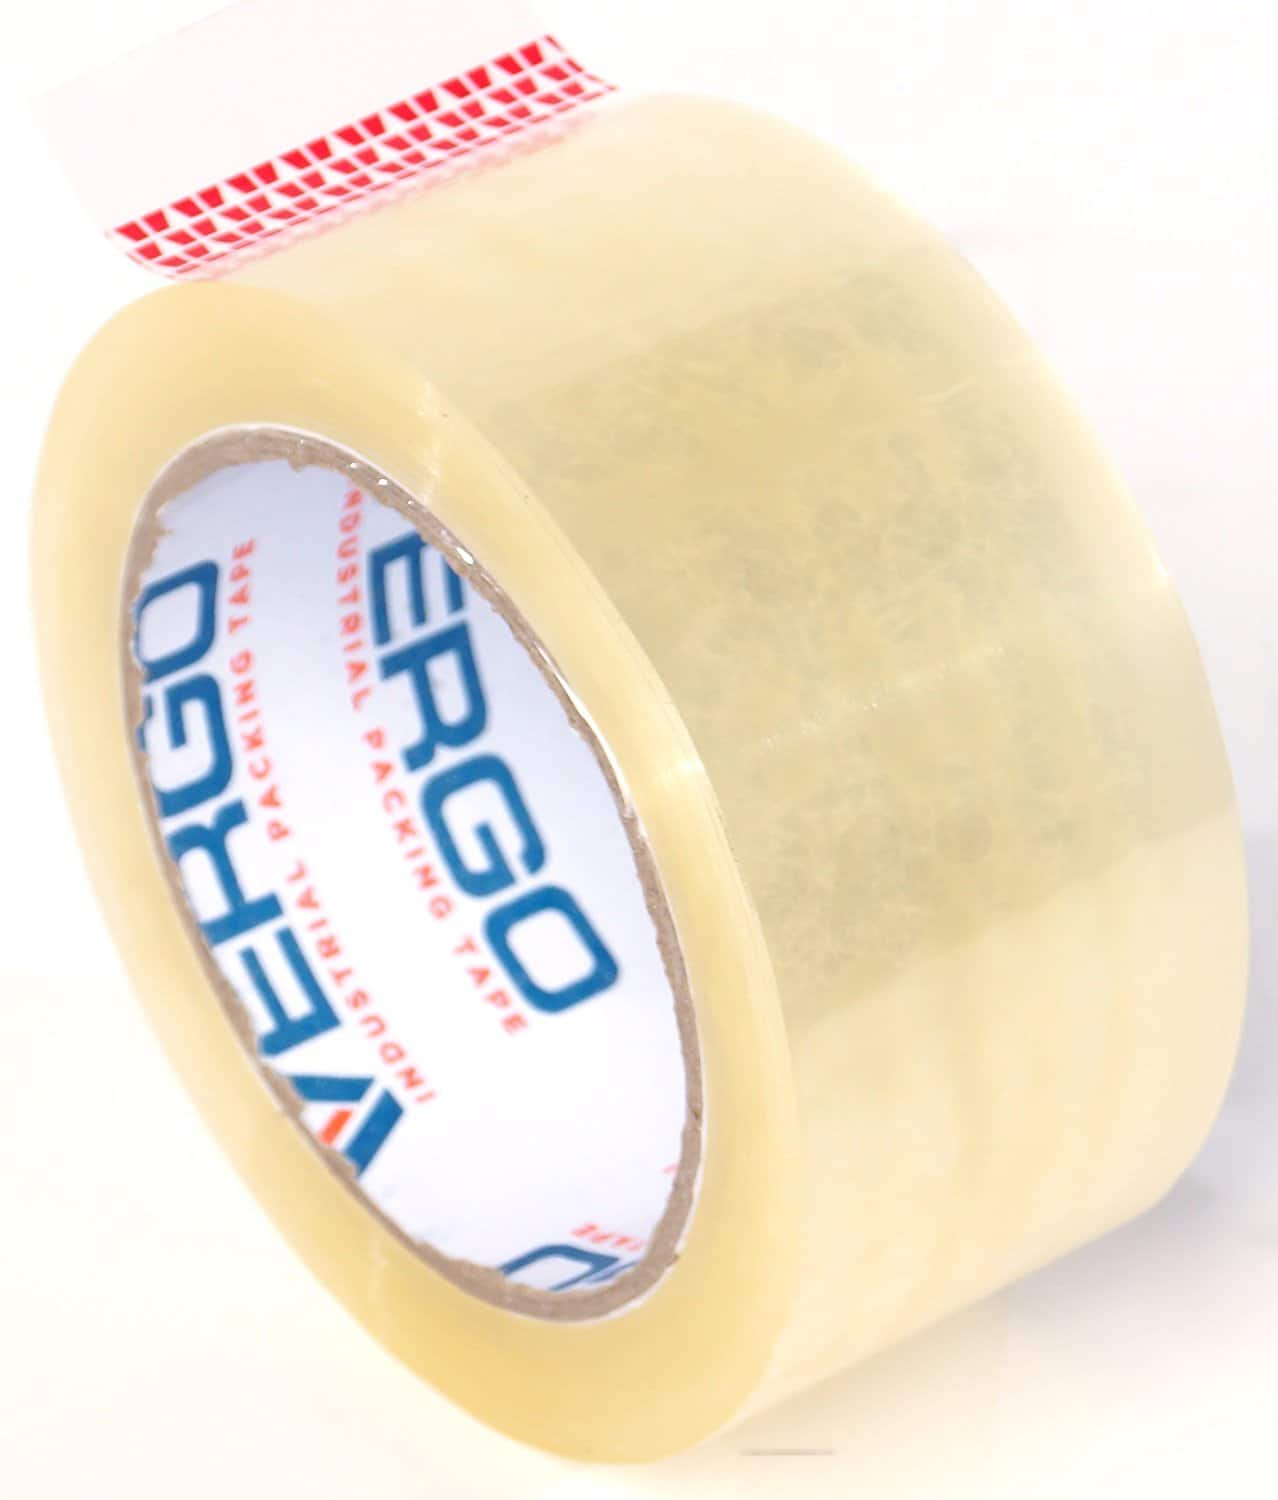 Heavy Duty Shipping and Packaging Tape - 12 rolls for $14 | 36 rolls for $39 | 6 Rolls for $9